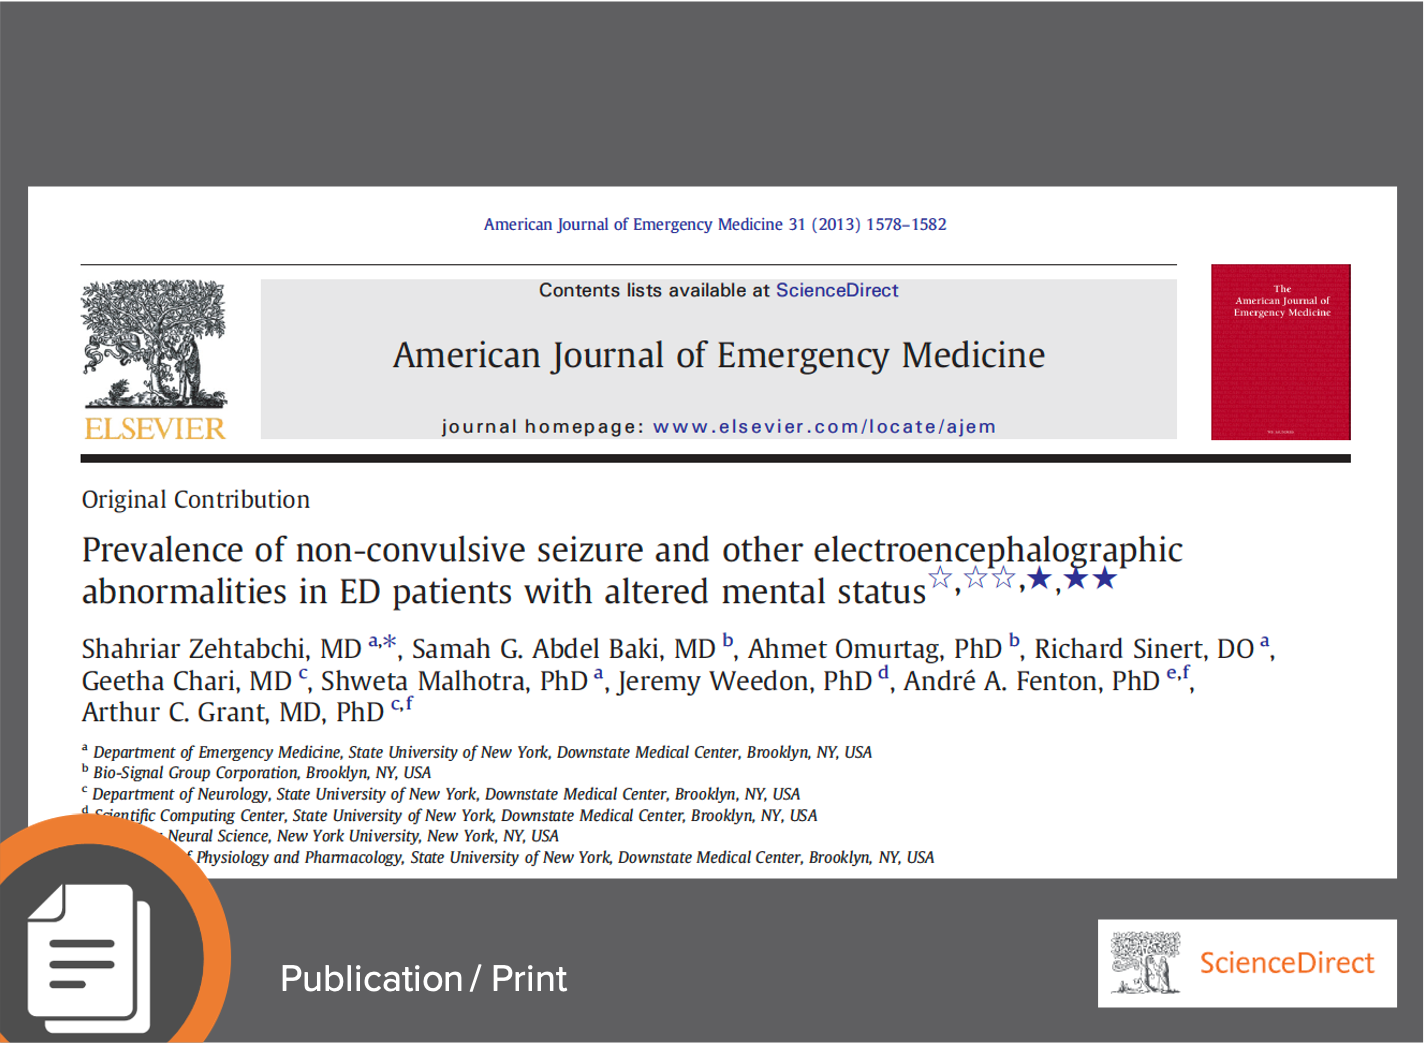 Zehtabchi, S. et al. (2013) Prevalence of Non-Convulsive Seizure and Other Electroencephalographic Abnormalities in ED Patients with Altered Mental Status. J Emerg Med 31(11):1578-1582. https://doi.org/10.1016/j.ajem.2013.08.002